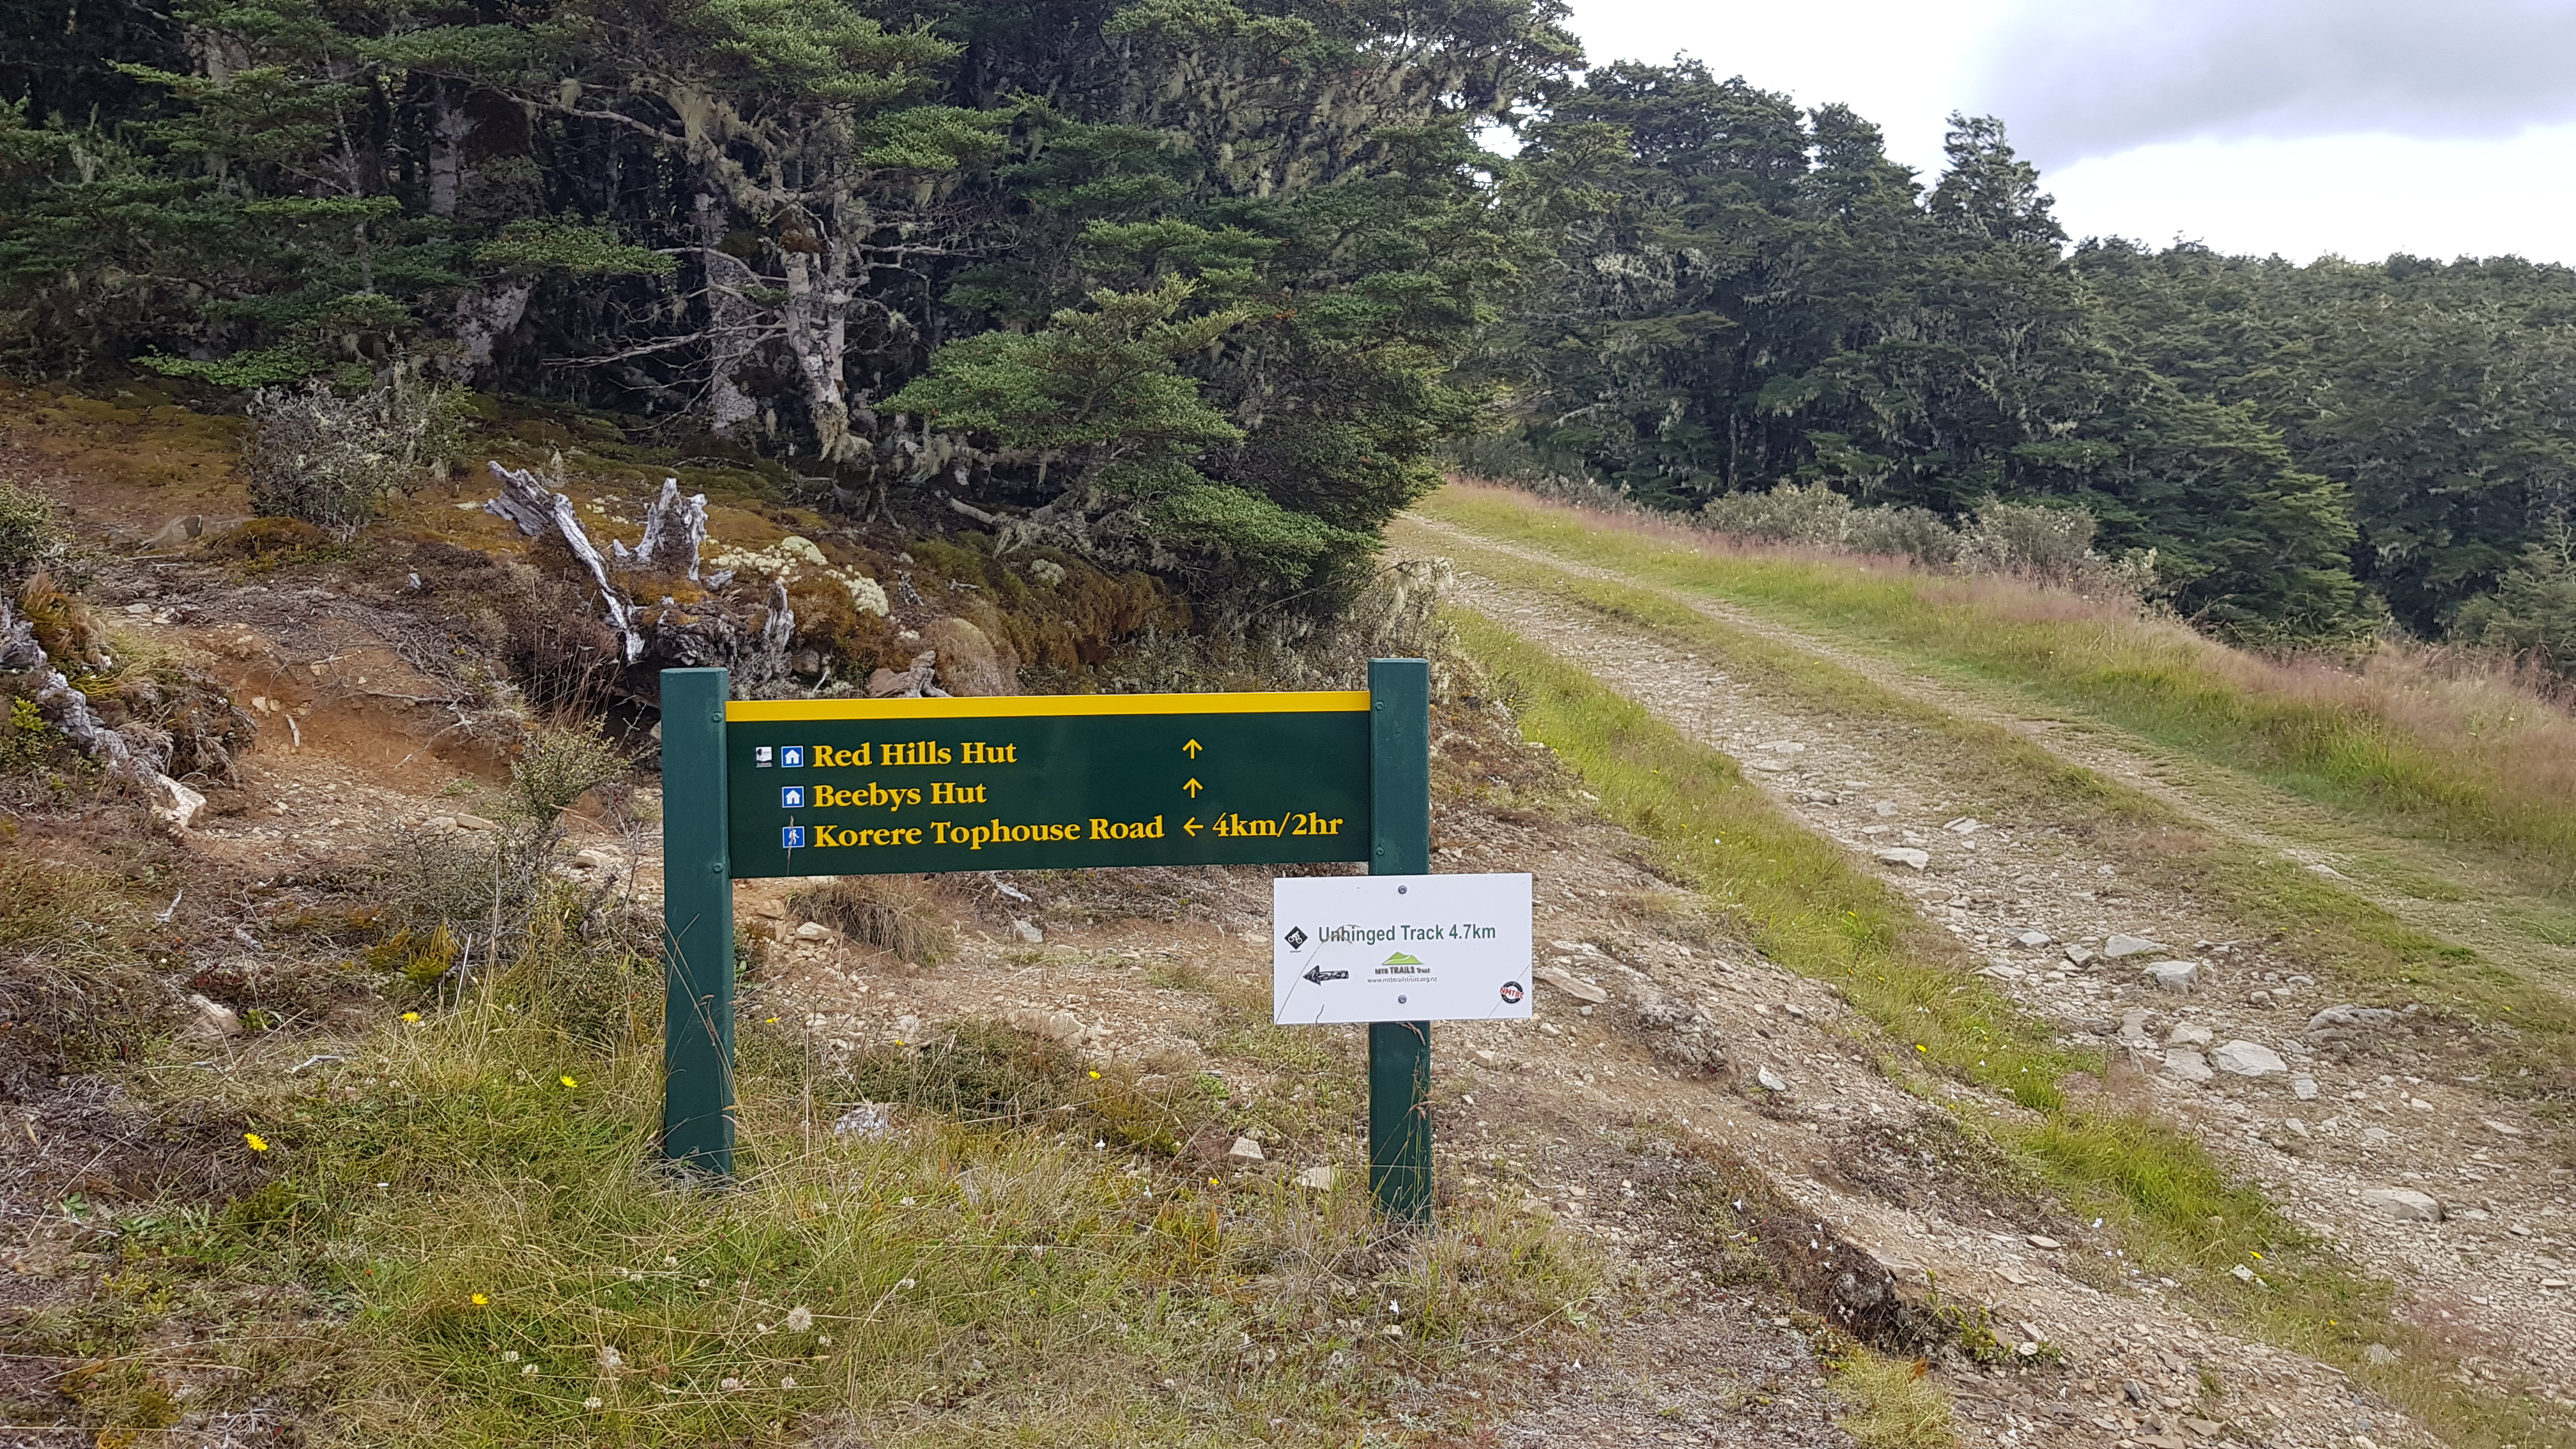 The junction with the main track to Beebys Knob